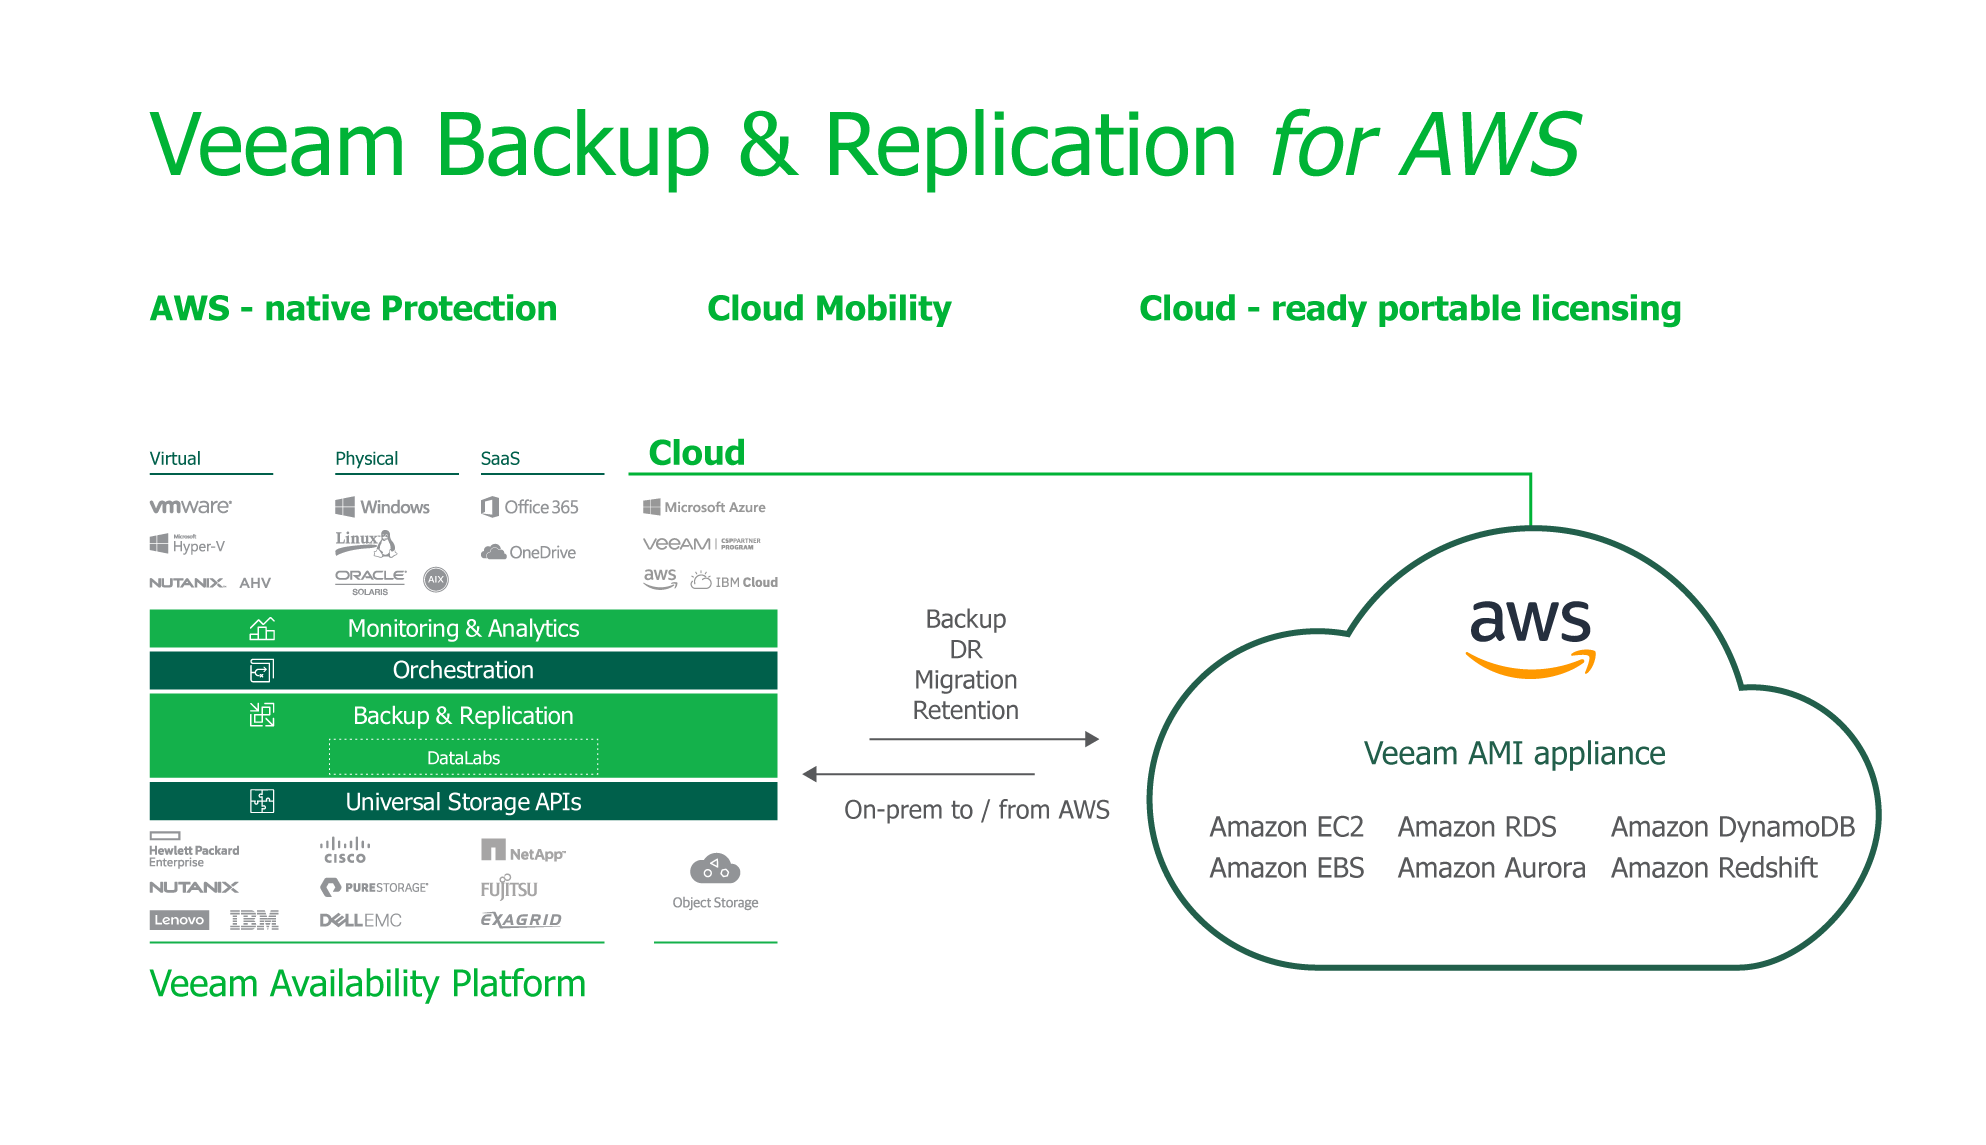 vbr-for-aws-for-hybrid-cloud.png